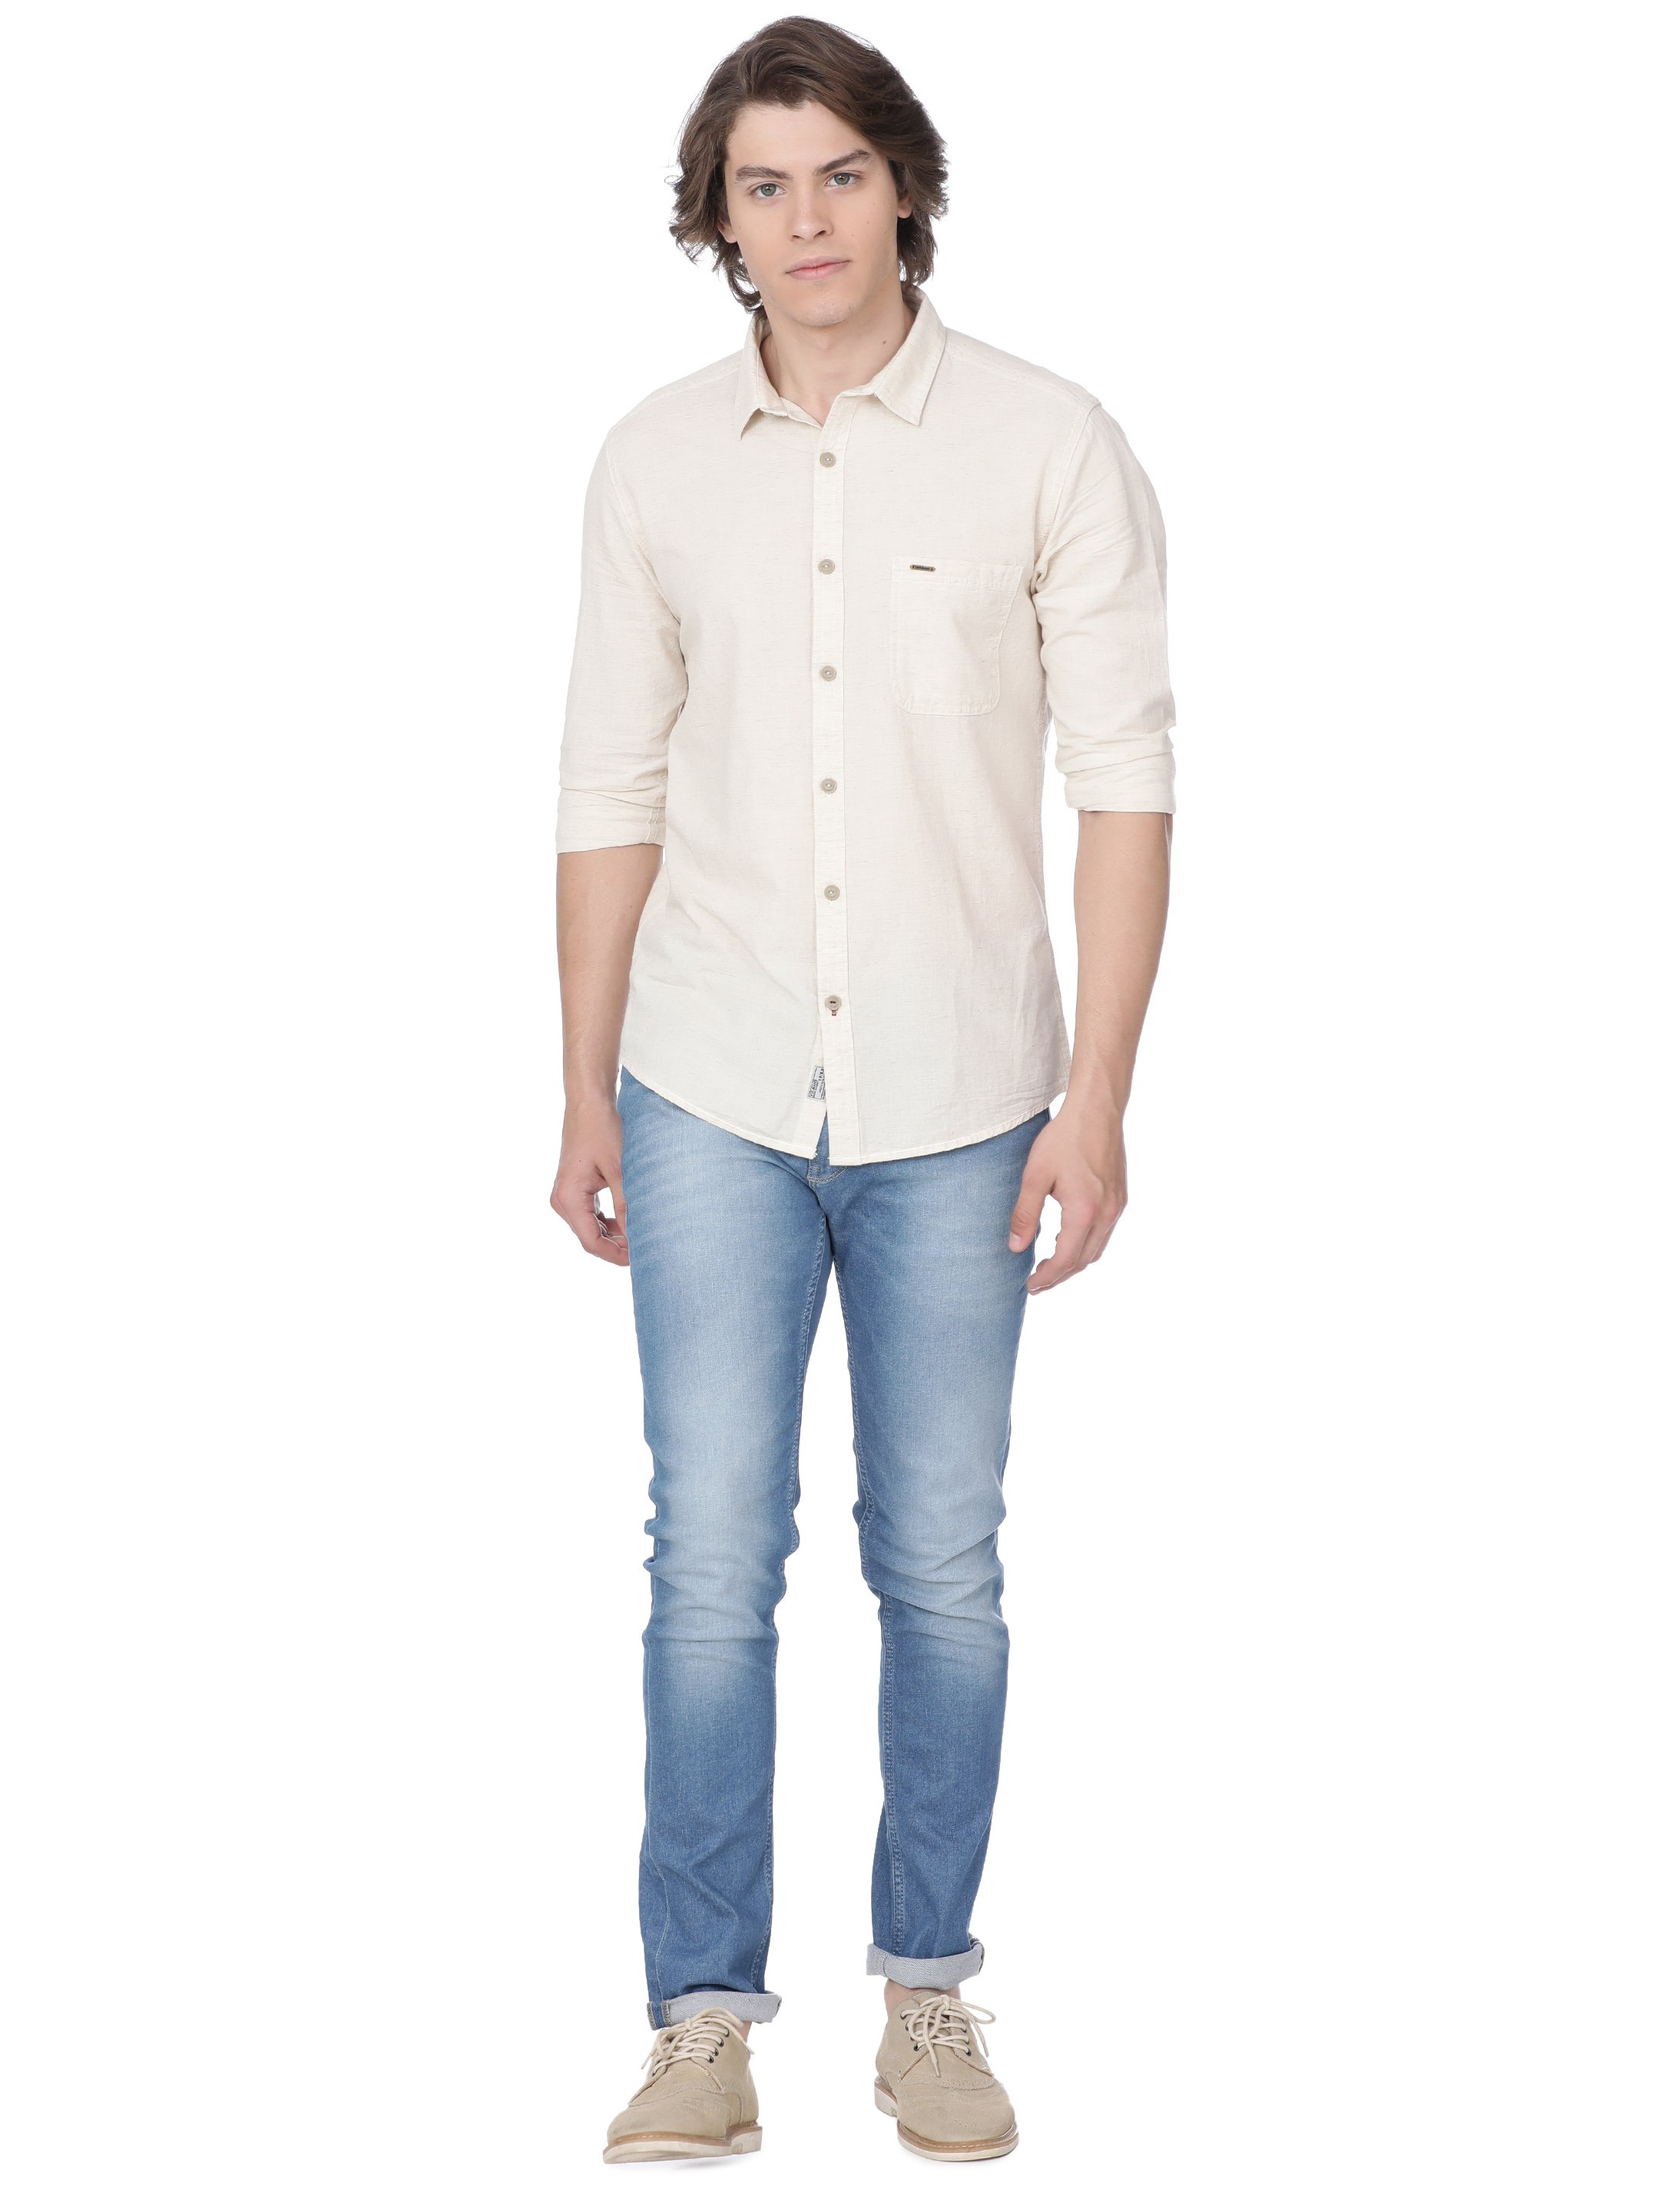 Voi Jeans   Brown Casual Shirts (VOSH1197)